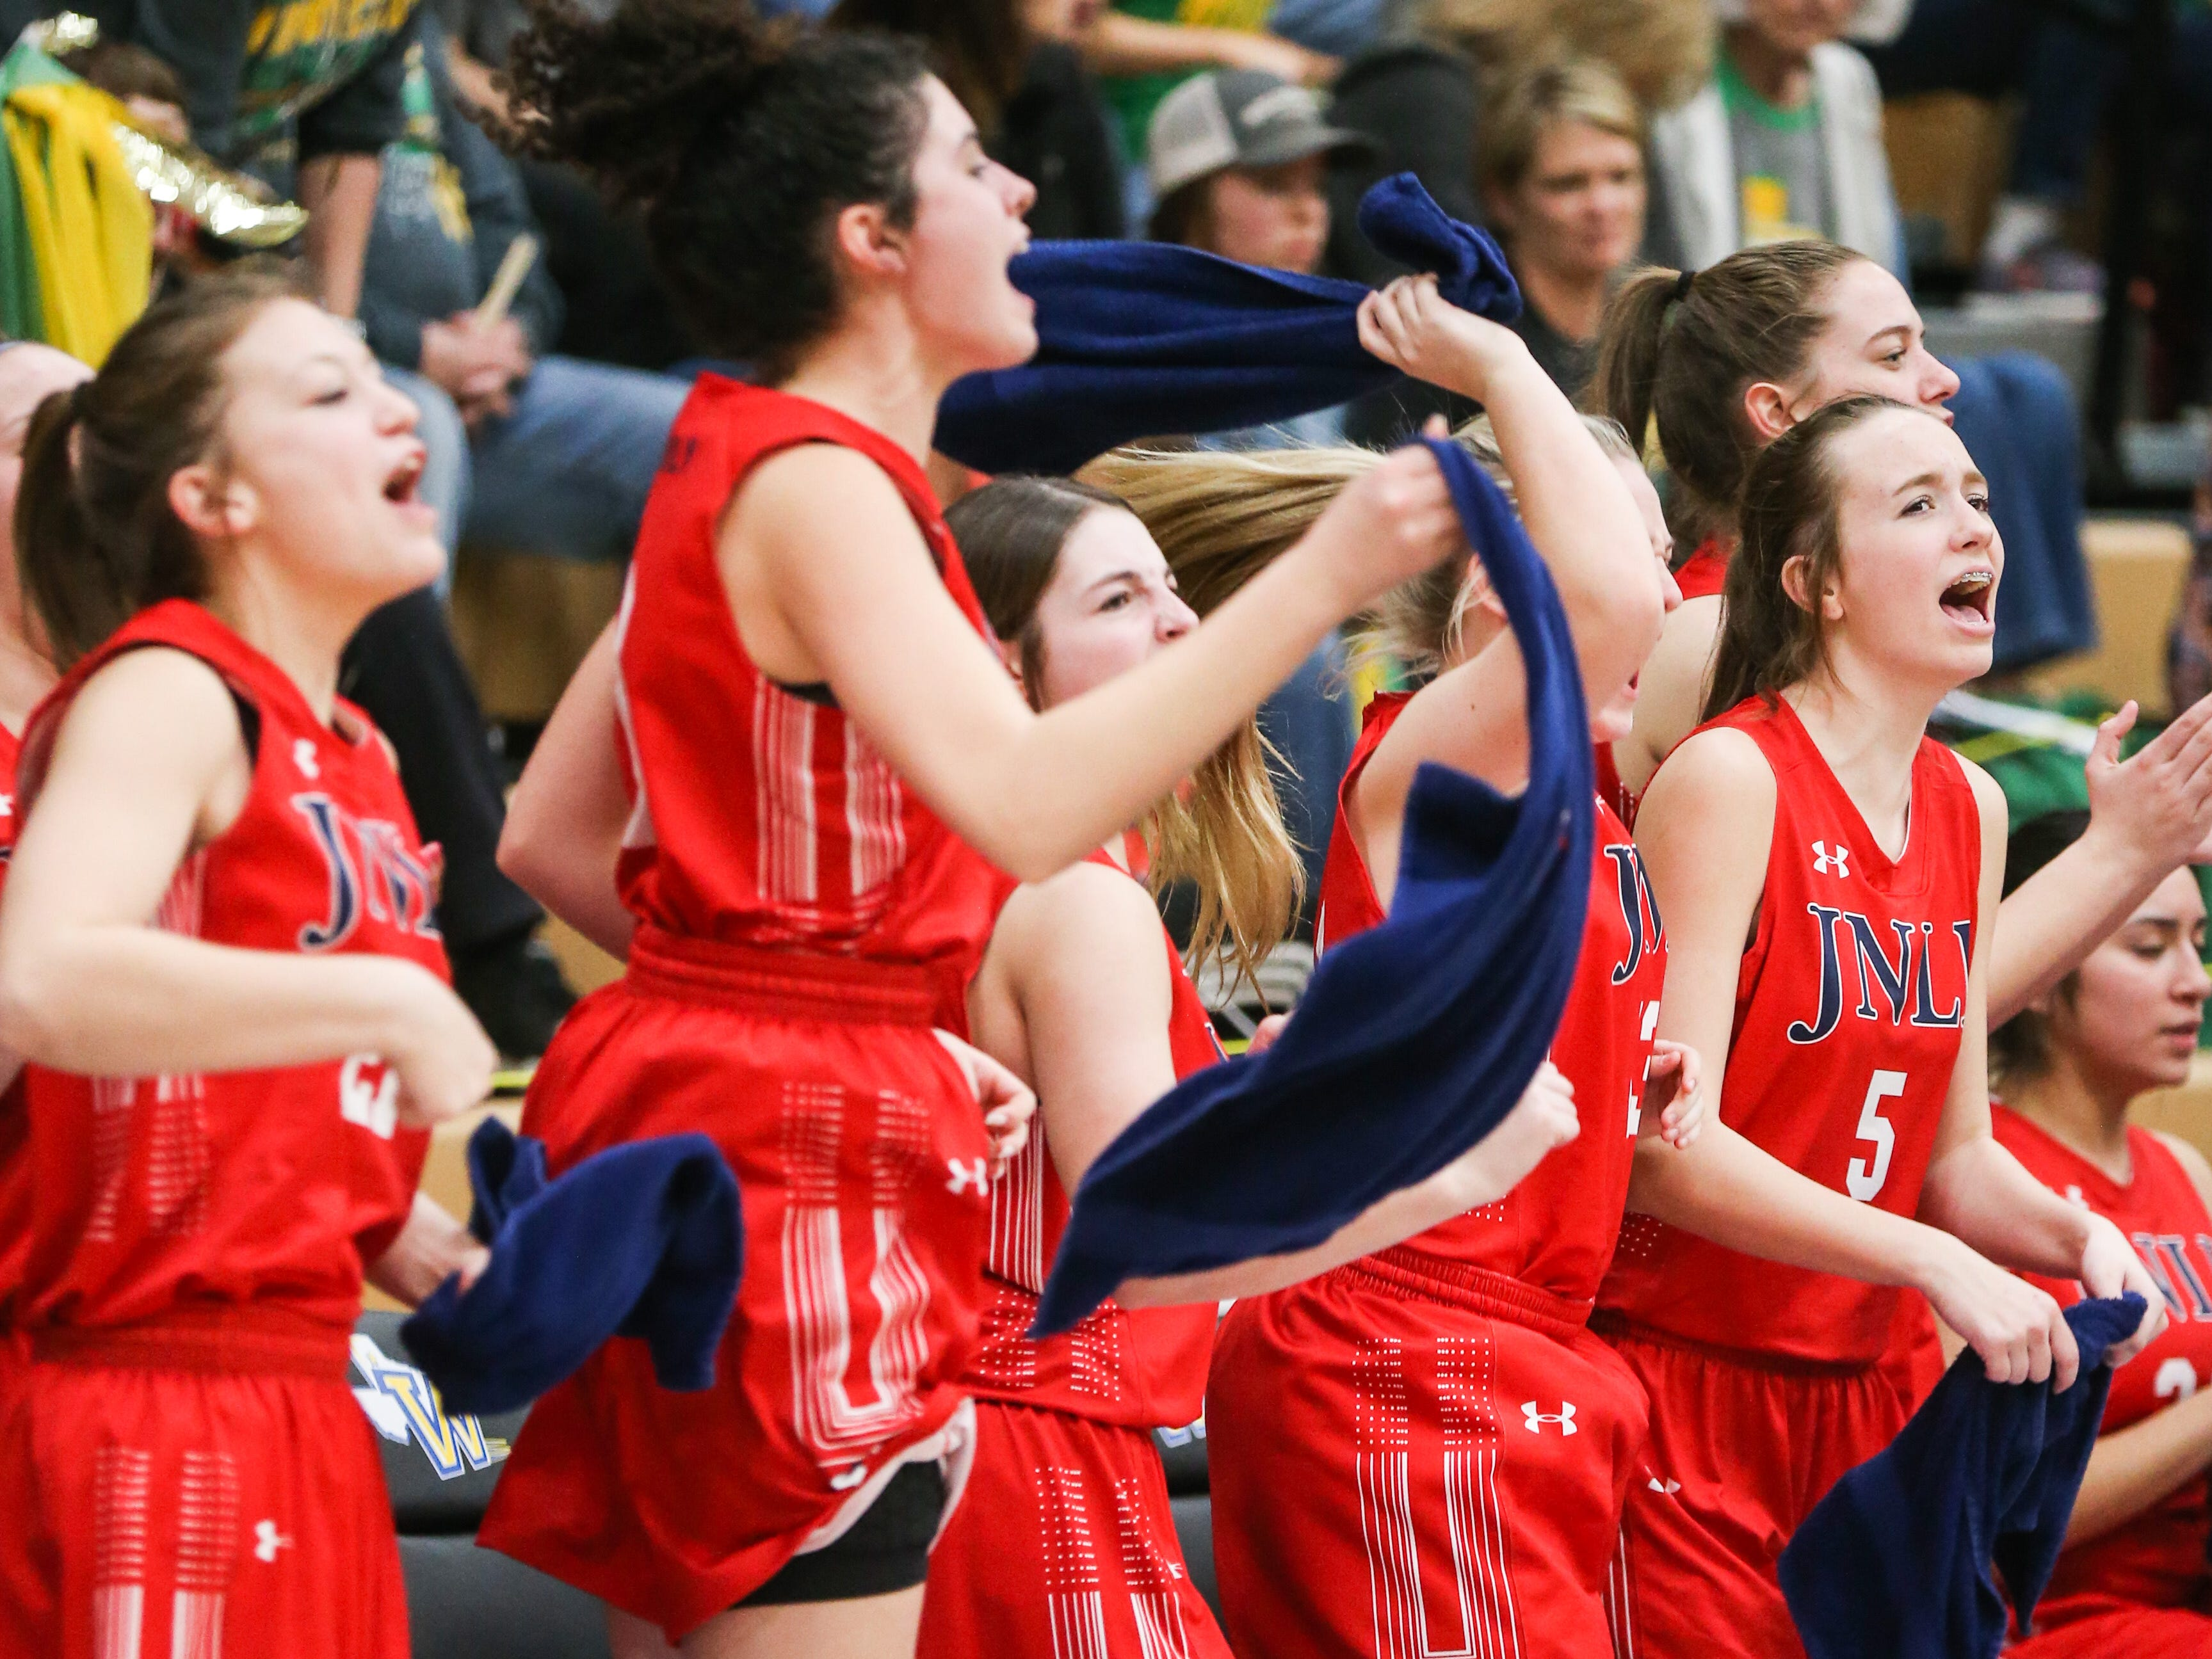 Jim Ned players cheer on their team during the I-3A regional tournament against Idalou Friday, Feb. 22, 2019, at Wayland Baptist University in Plainview.